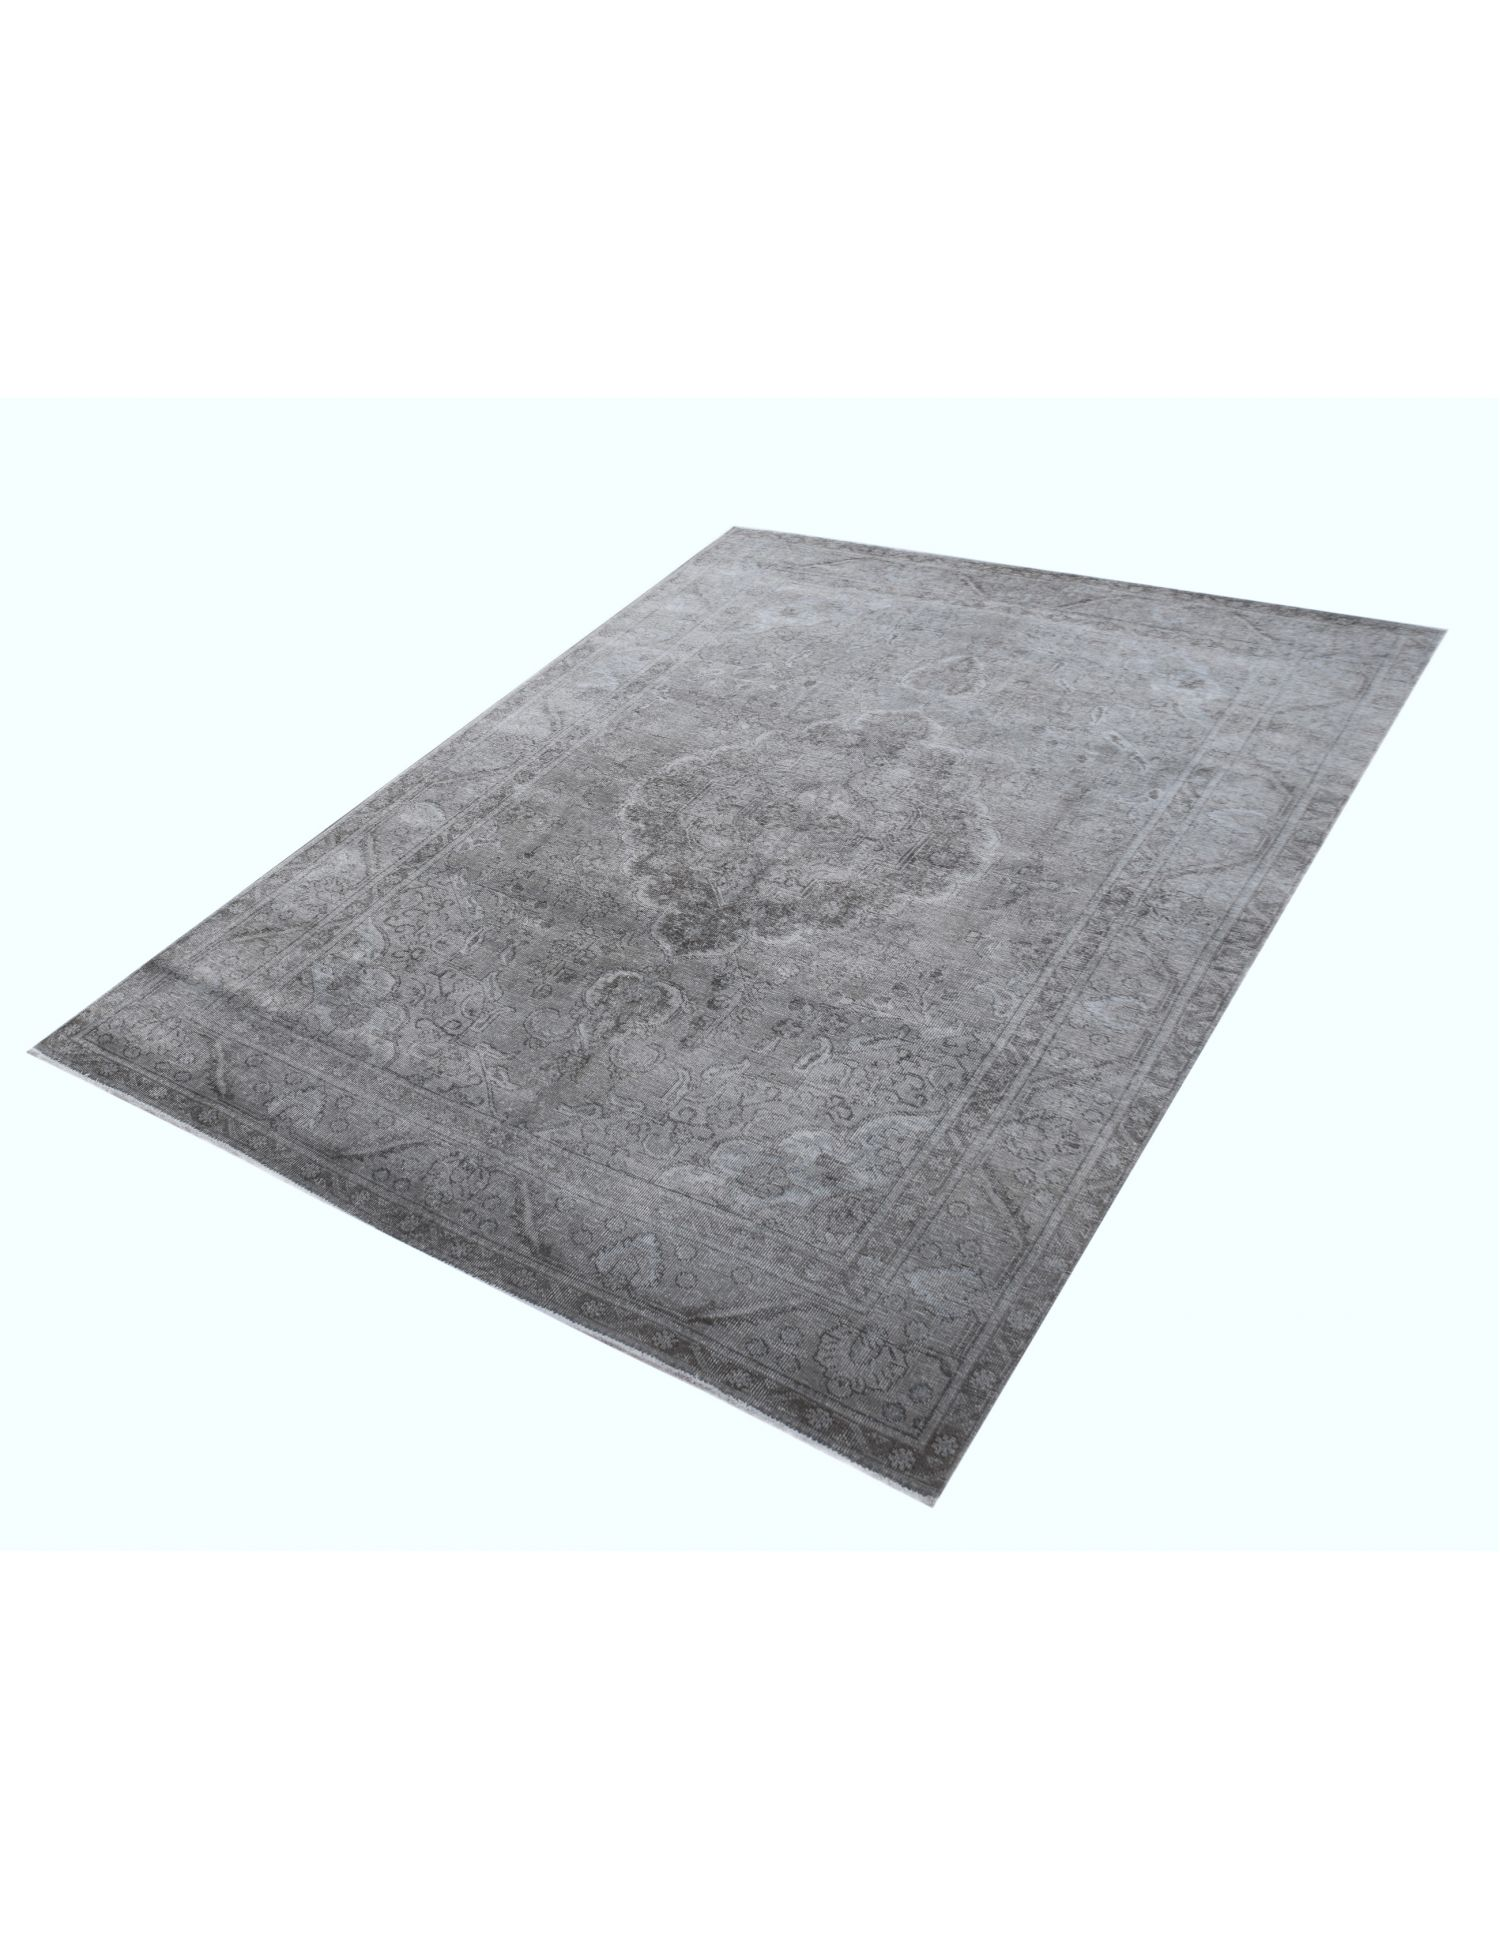 Vintage Carpet  grey <br/>290 x 197 cm